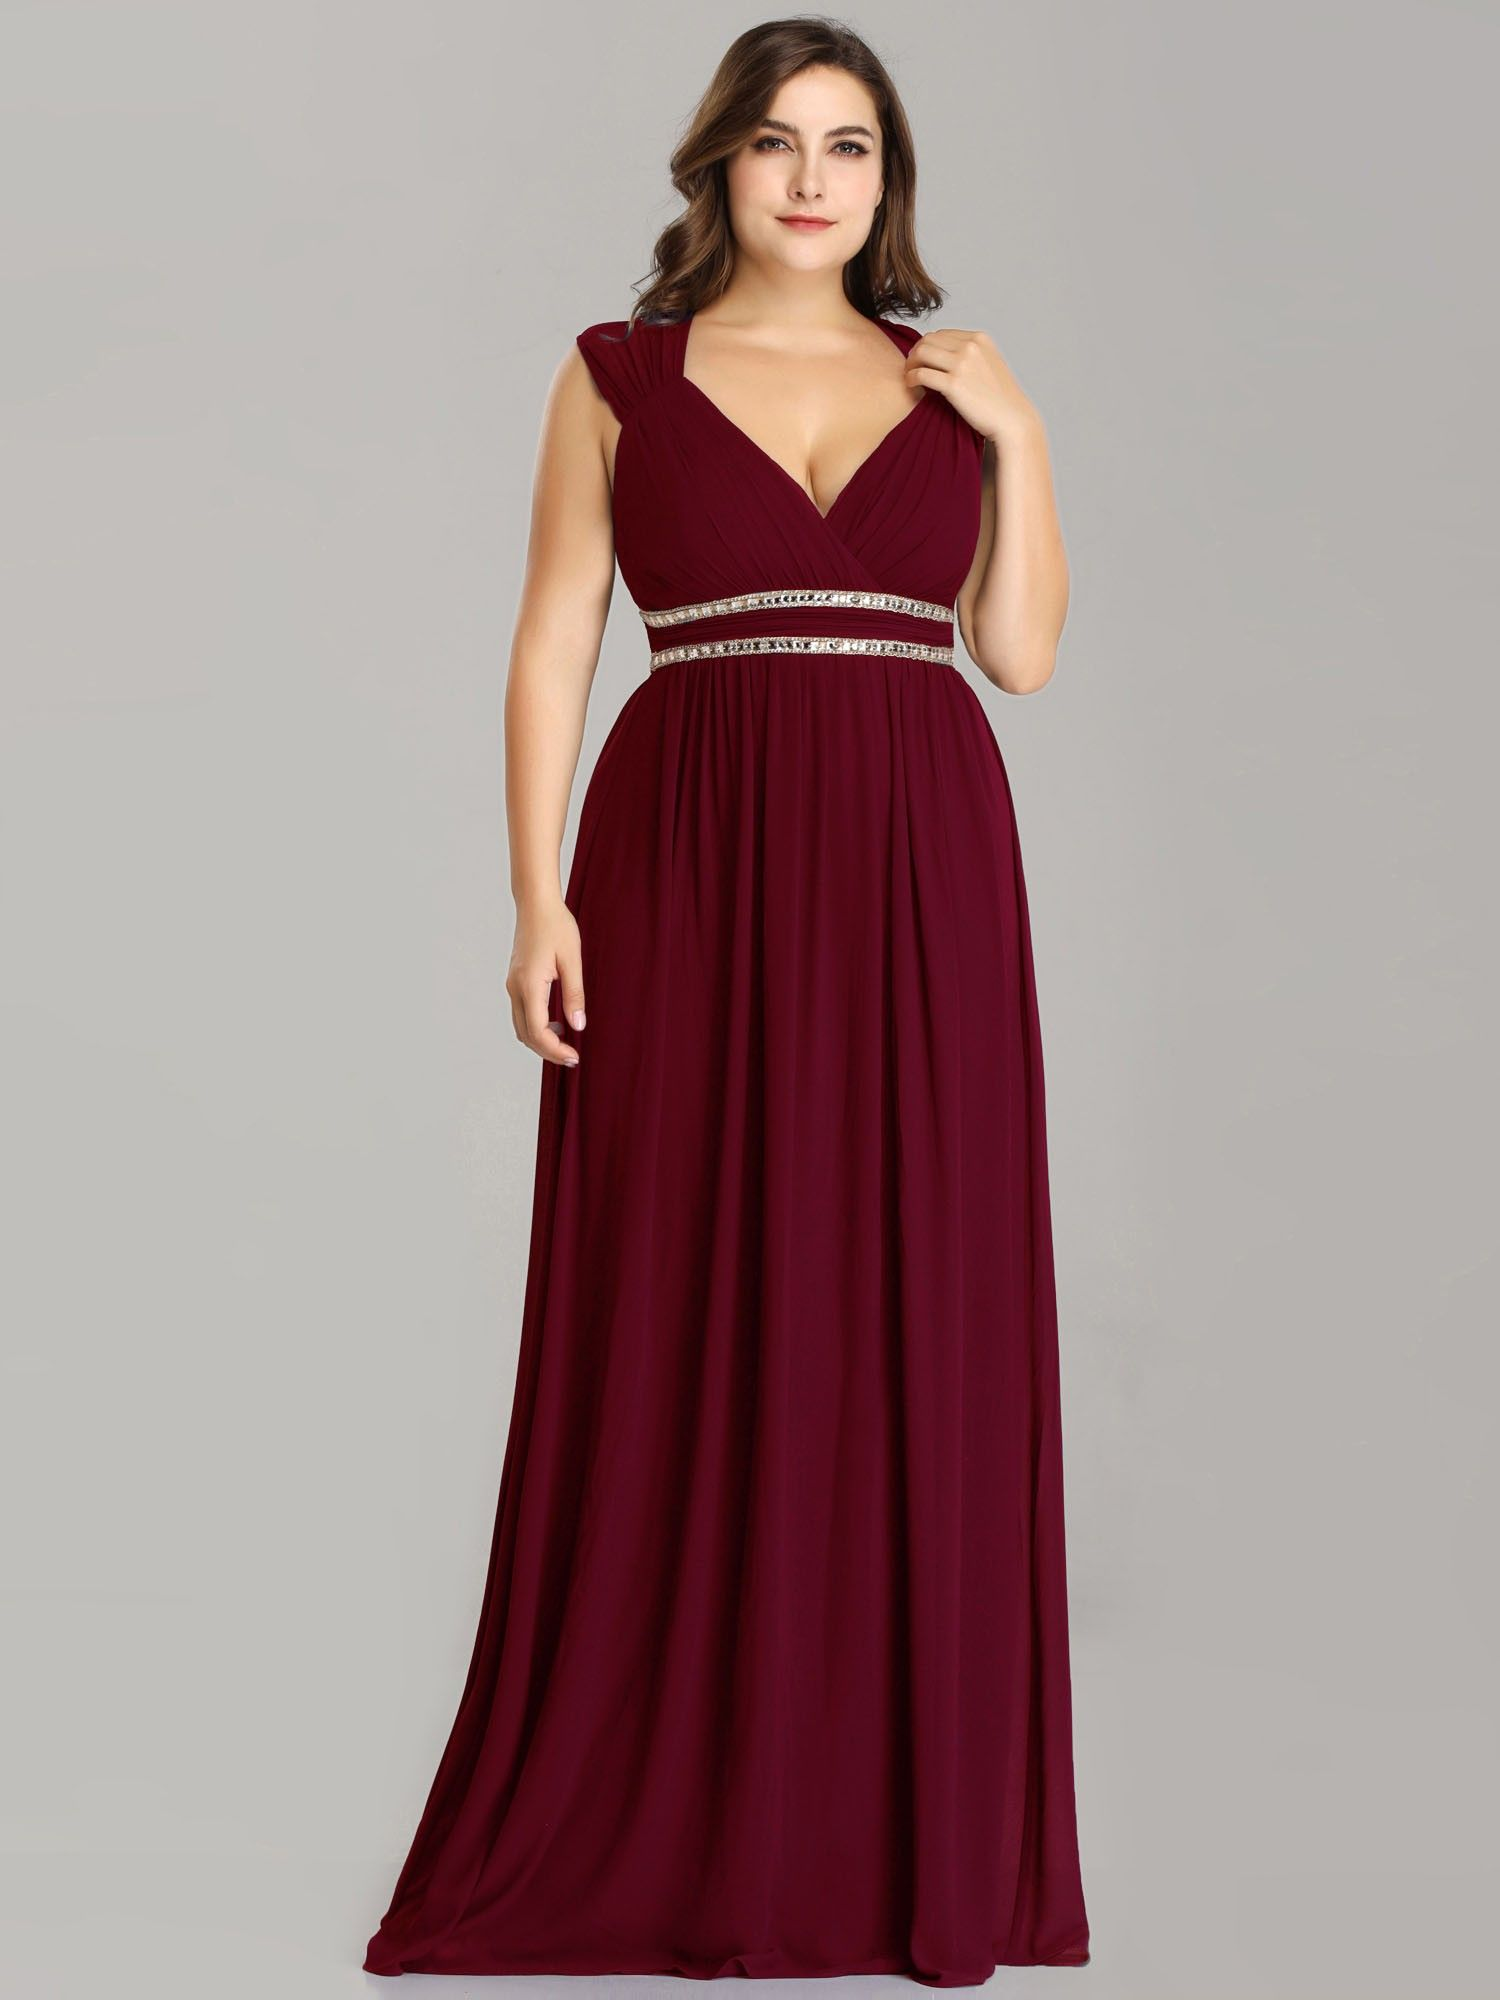 94f01a73584 Plus Size Sleeveless Grecian Style Evening Dress in 2019